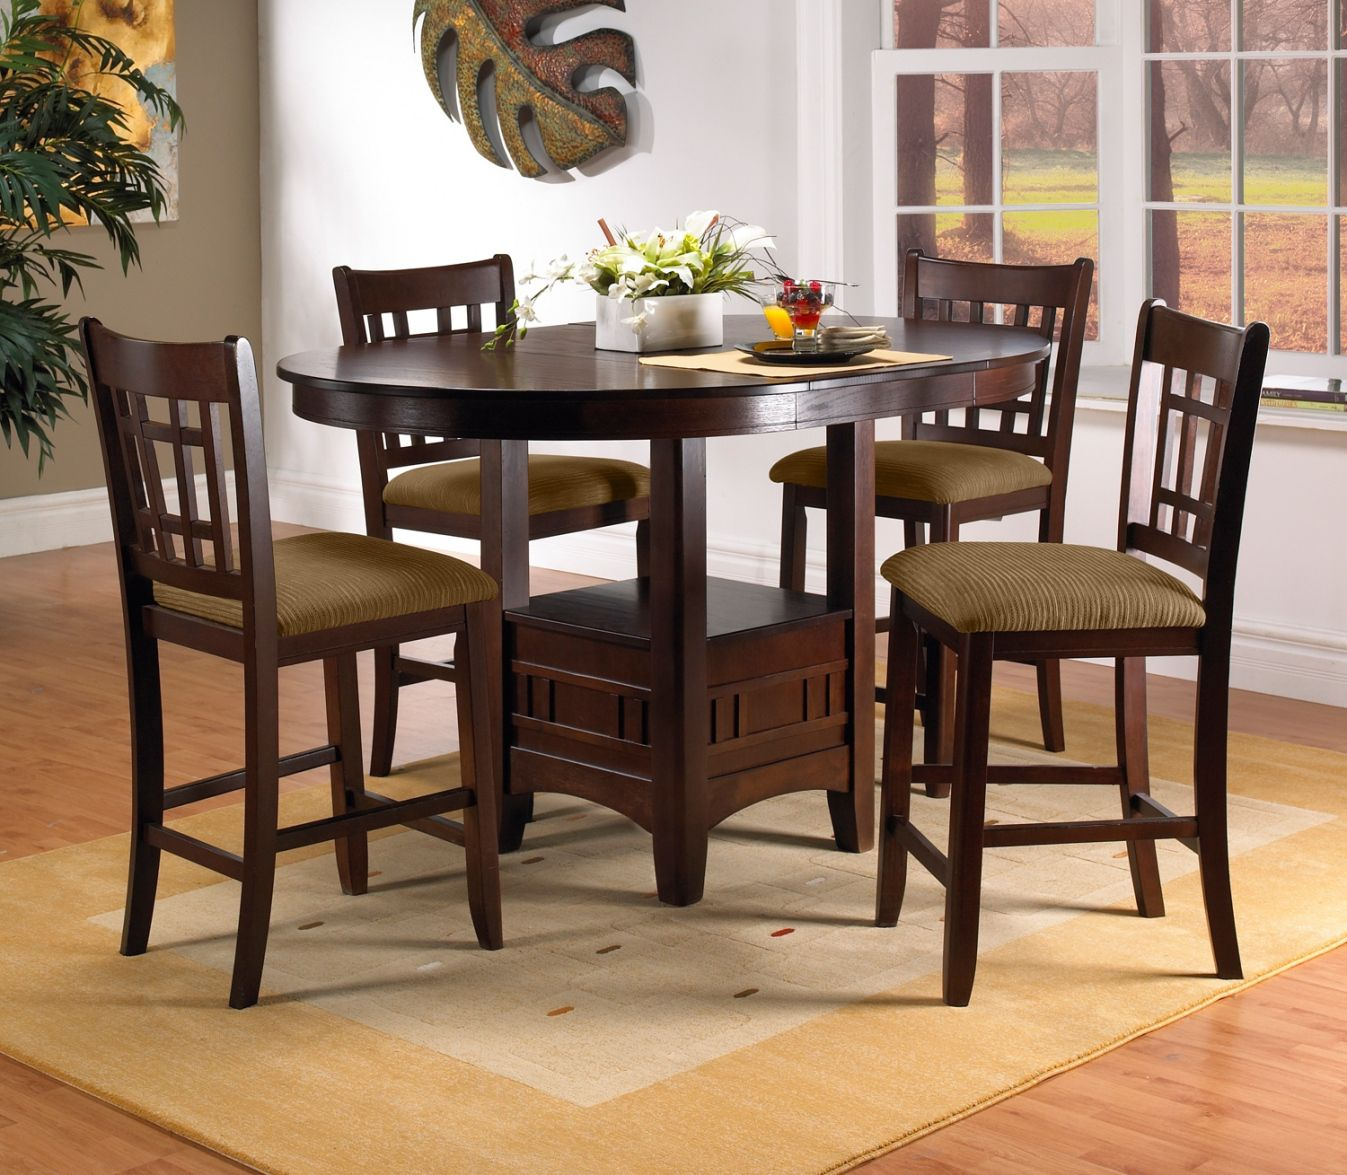 Pub Style Kitchen Table and Chairs - Diy Modern Furniture Check more at / & Pub Style Kitchen Table and Chairs - Diy Modern Furniture Check more ...